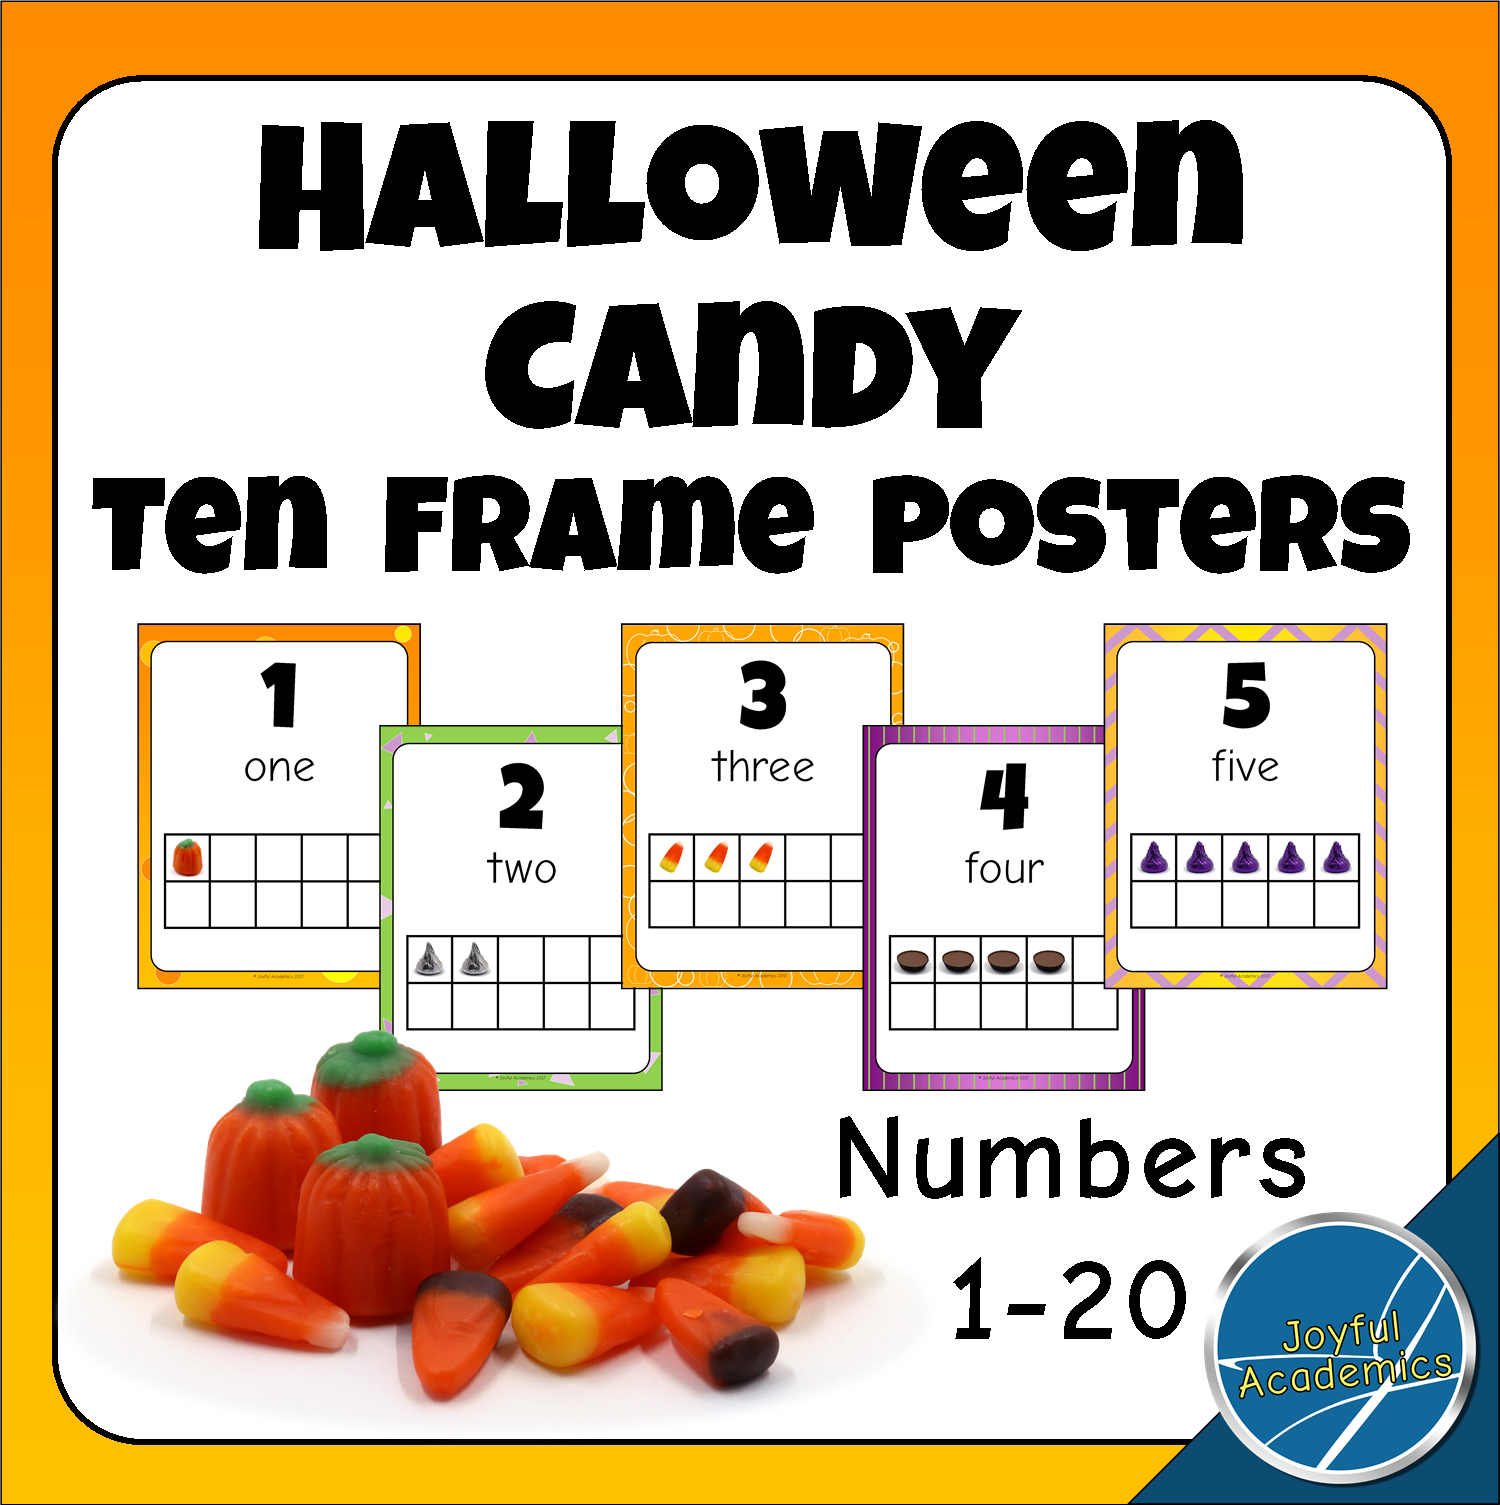 Halloween Candy Ten Frame Posters